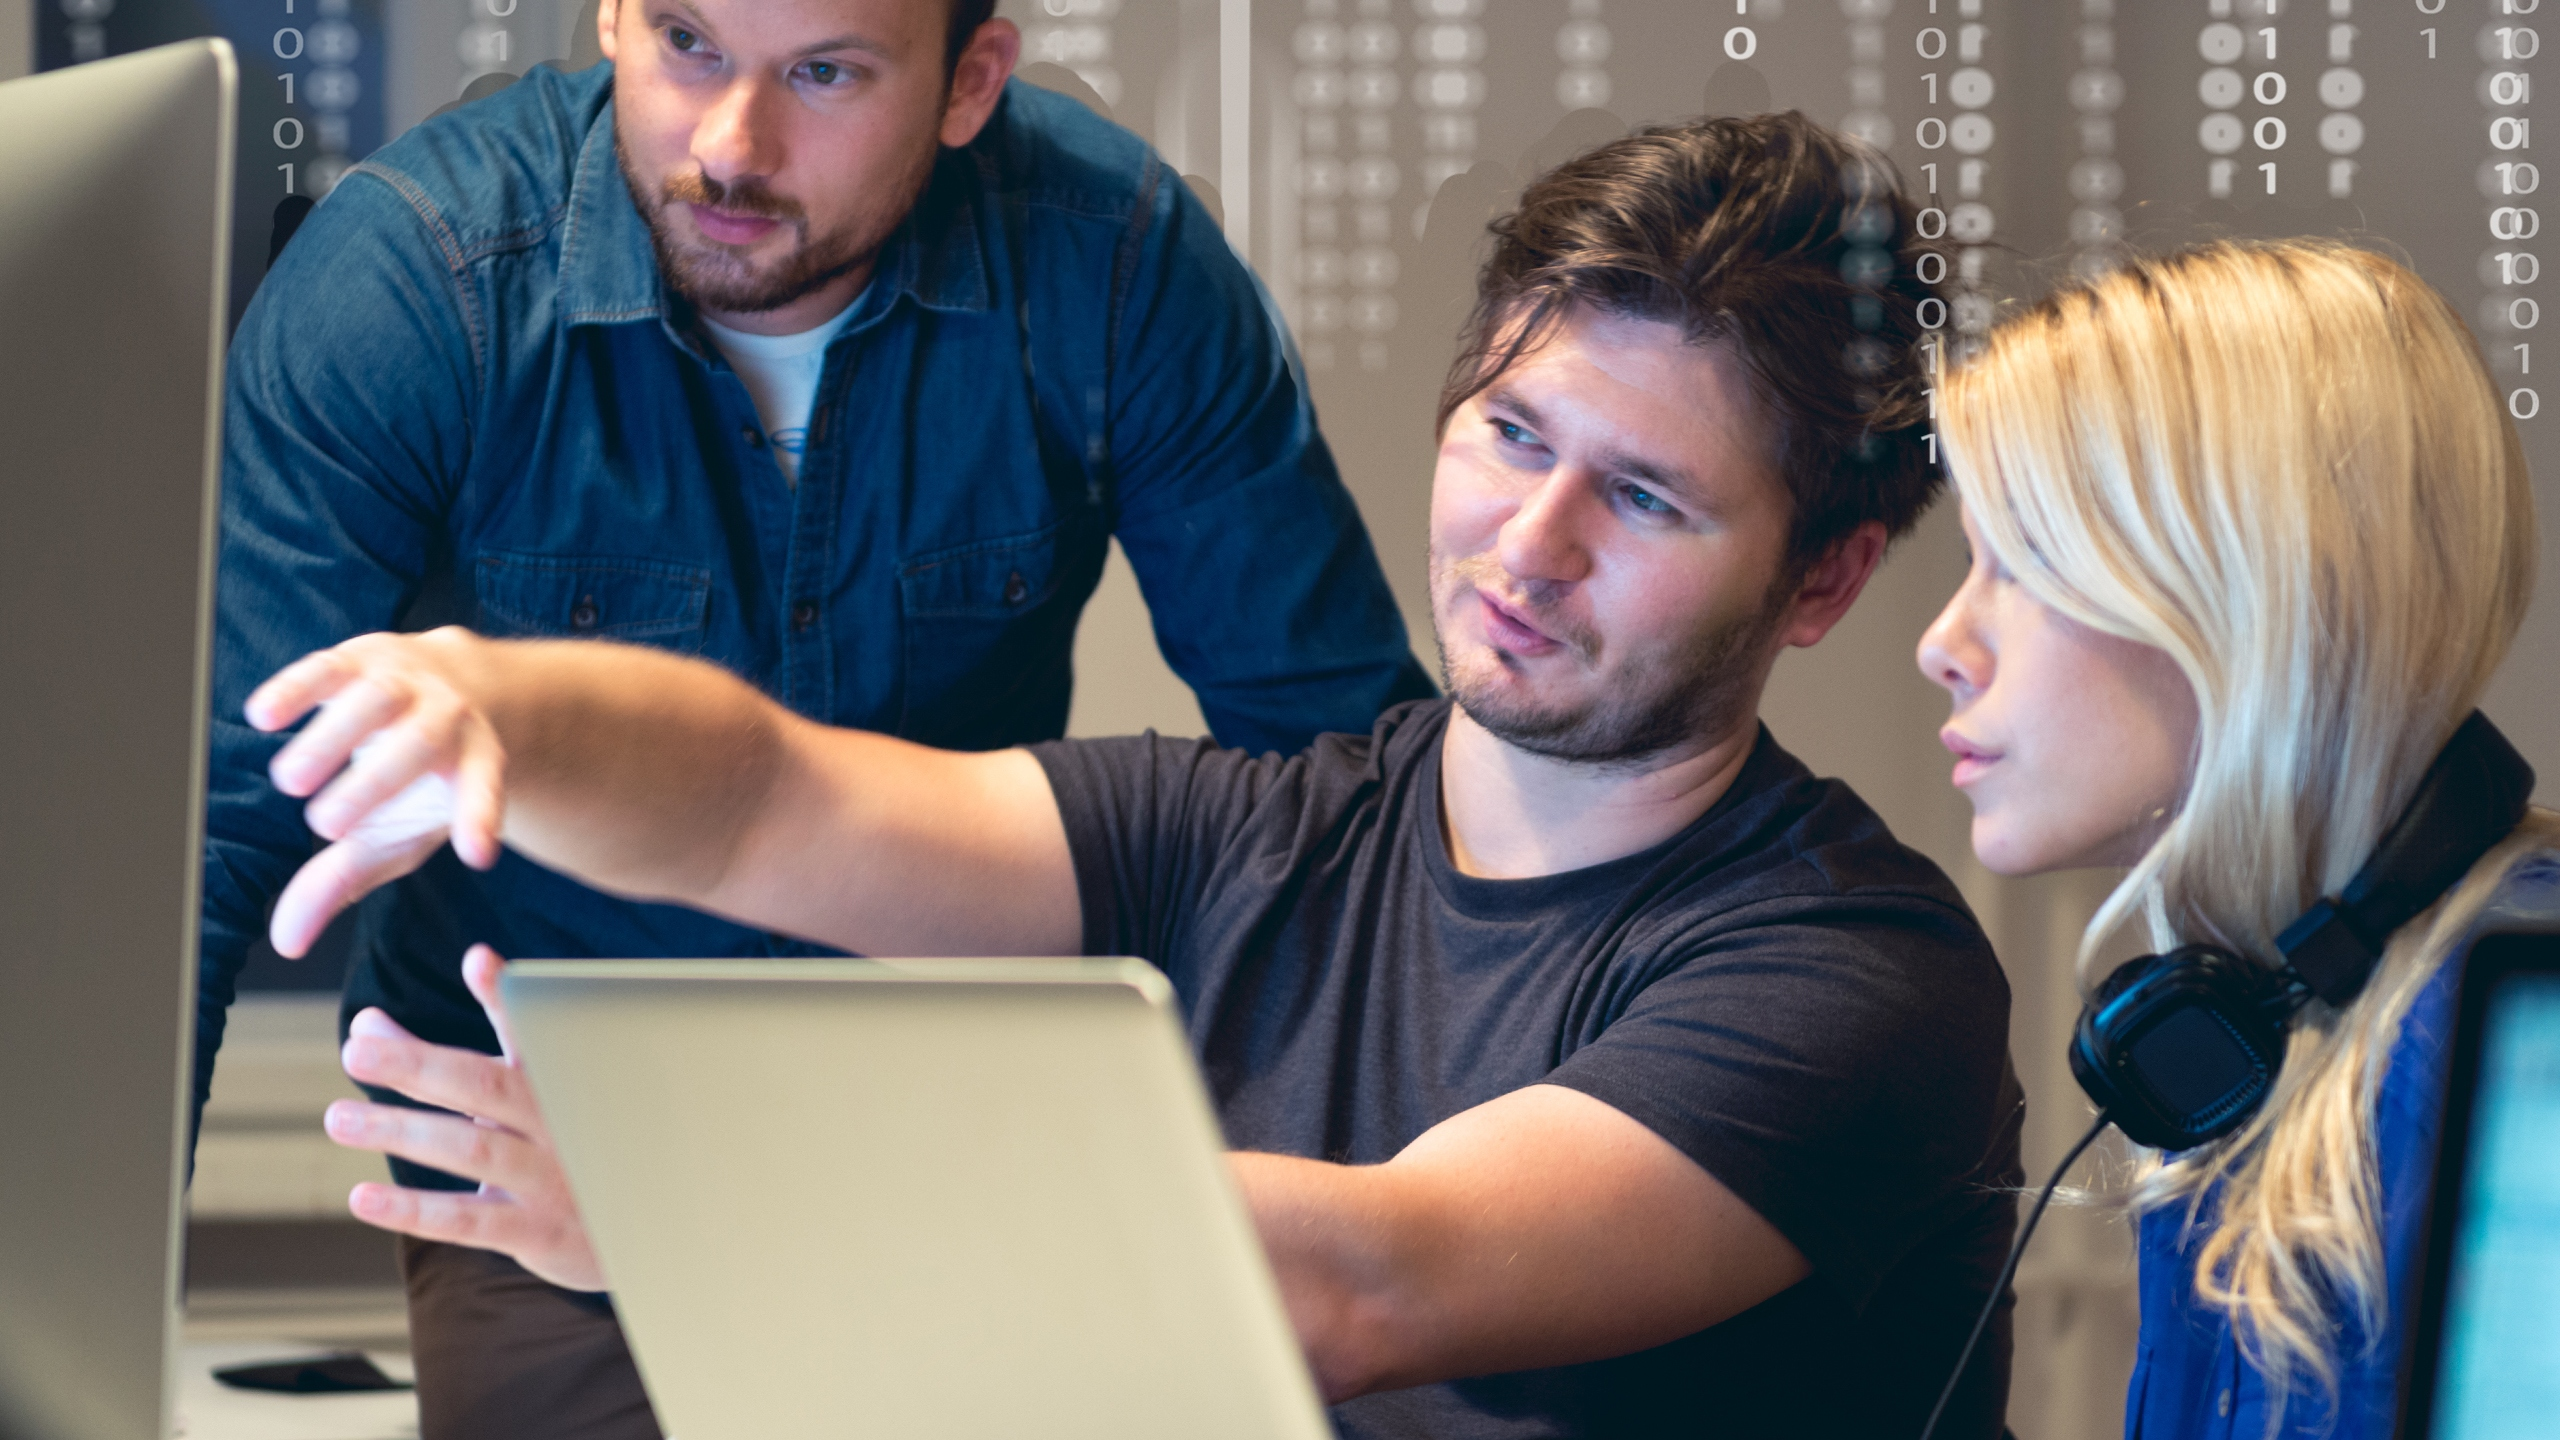 Three young professional group and living benefit experts discussing innovative solutions while analyzing data on one computer screen